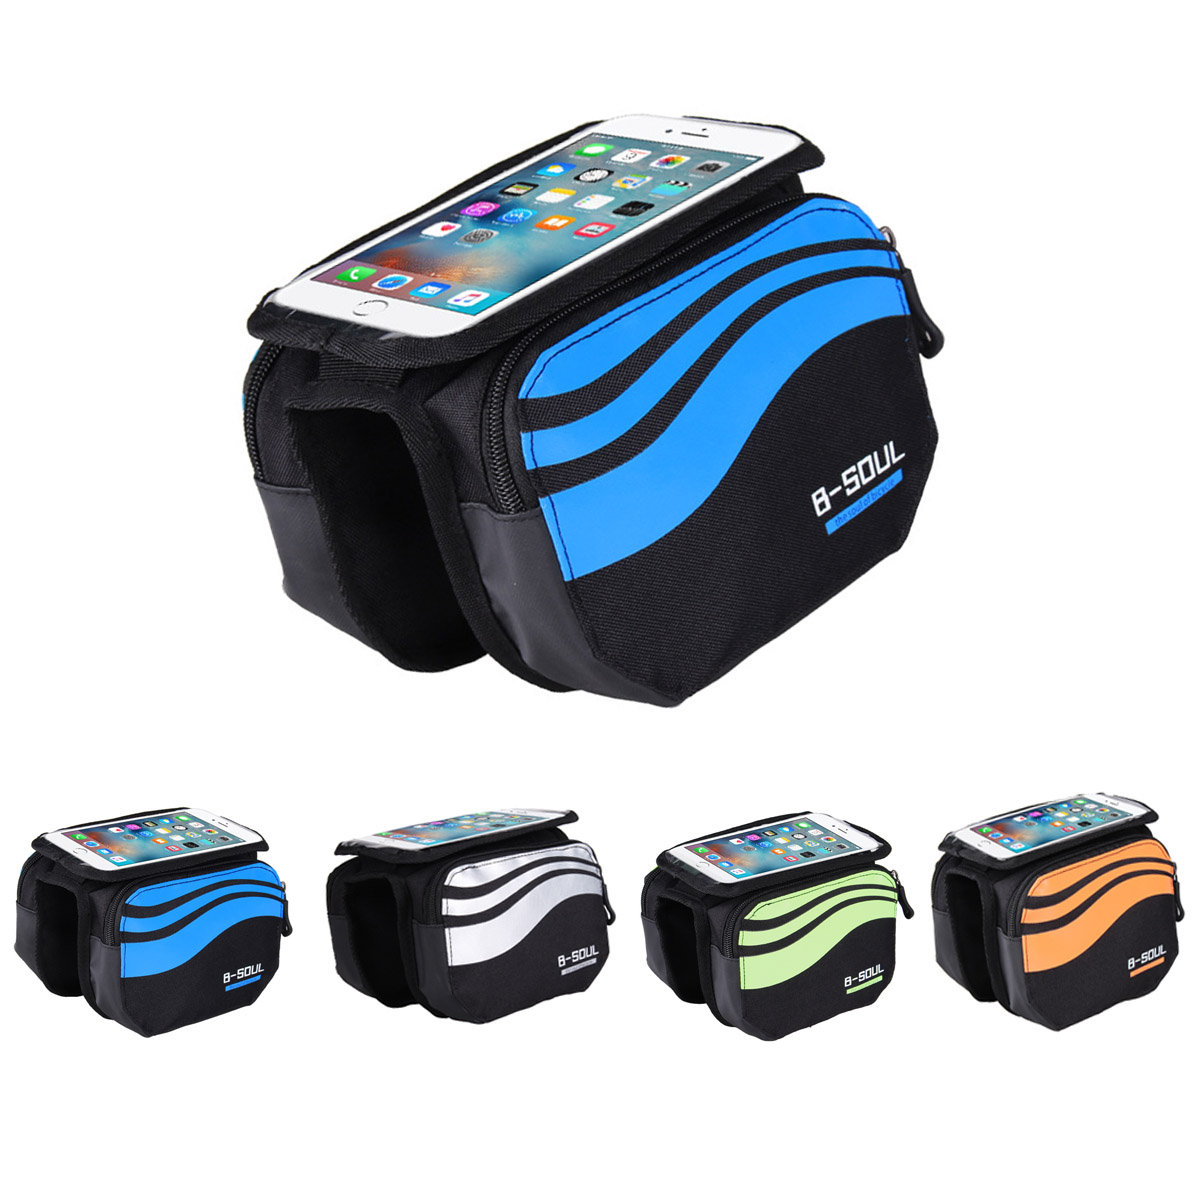 Bike Frame Front Bag Bicycle Cycling Riding Bag Pannier Smartphone & GPS Touch Screen Case Bicycle Accessories 5.7 Inches